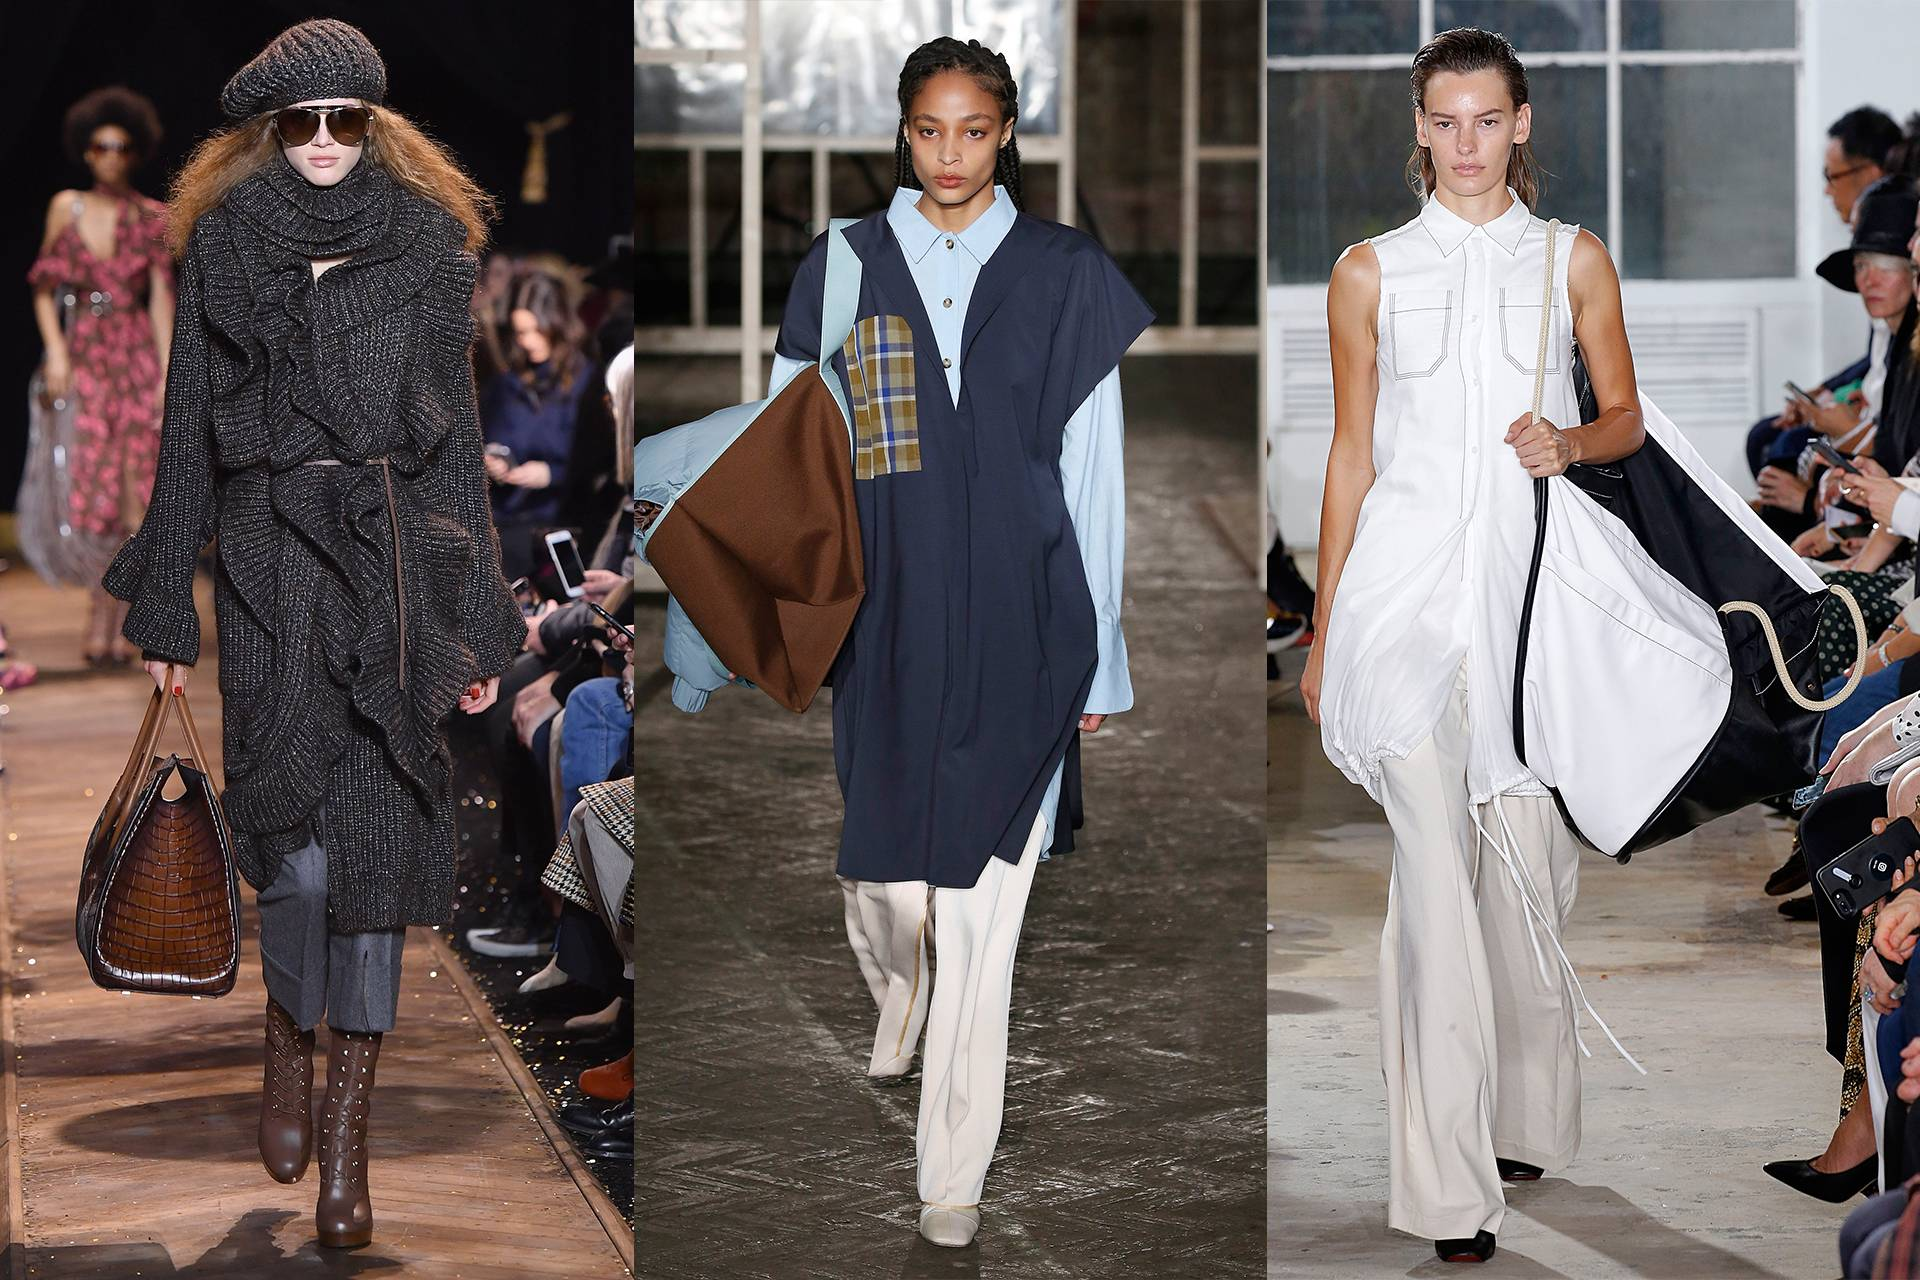 Autumn Winter 2019 Fashion Trends 11 Things We Ll Be Wearing Glamour Uk